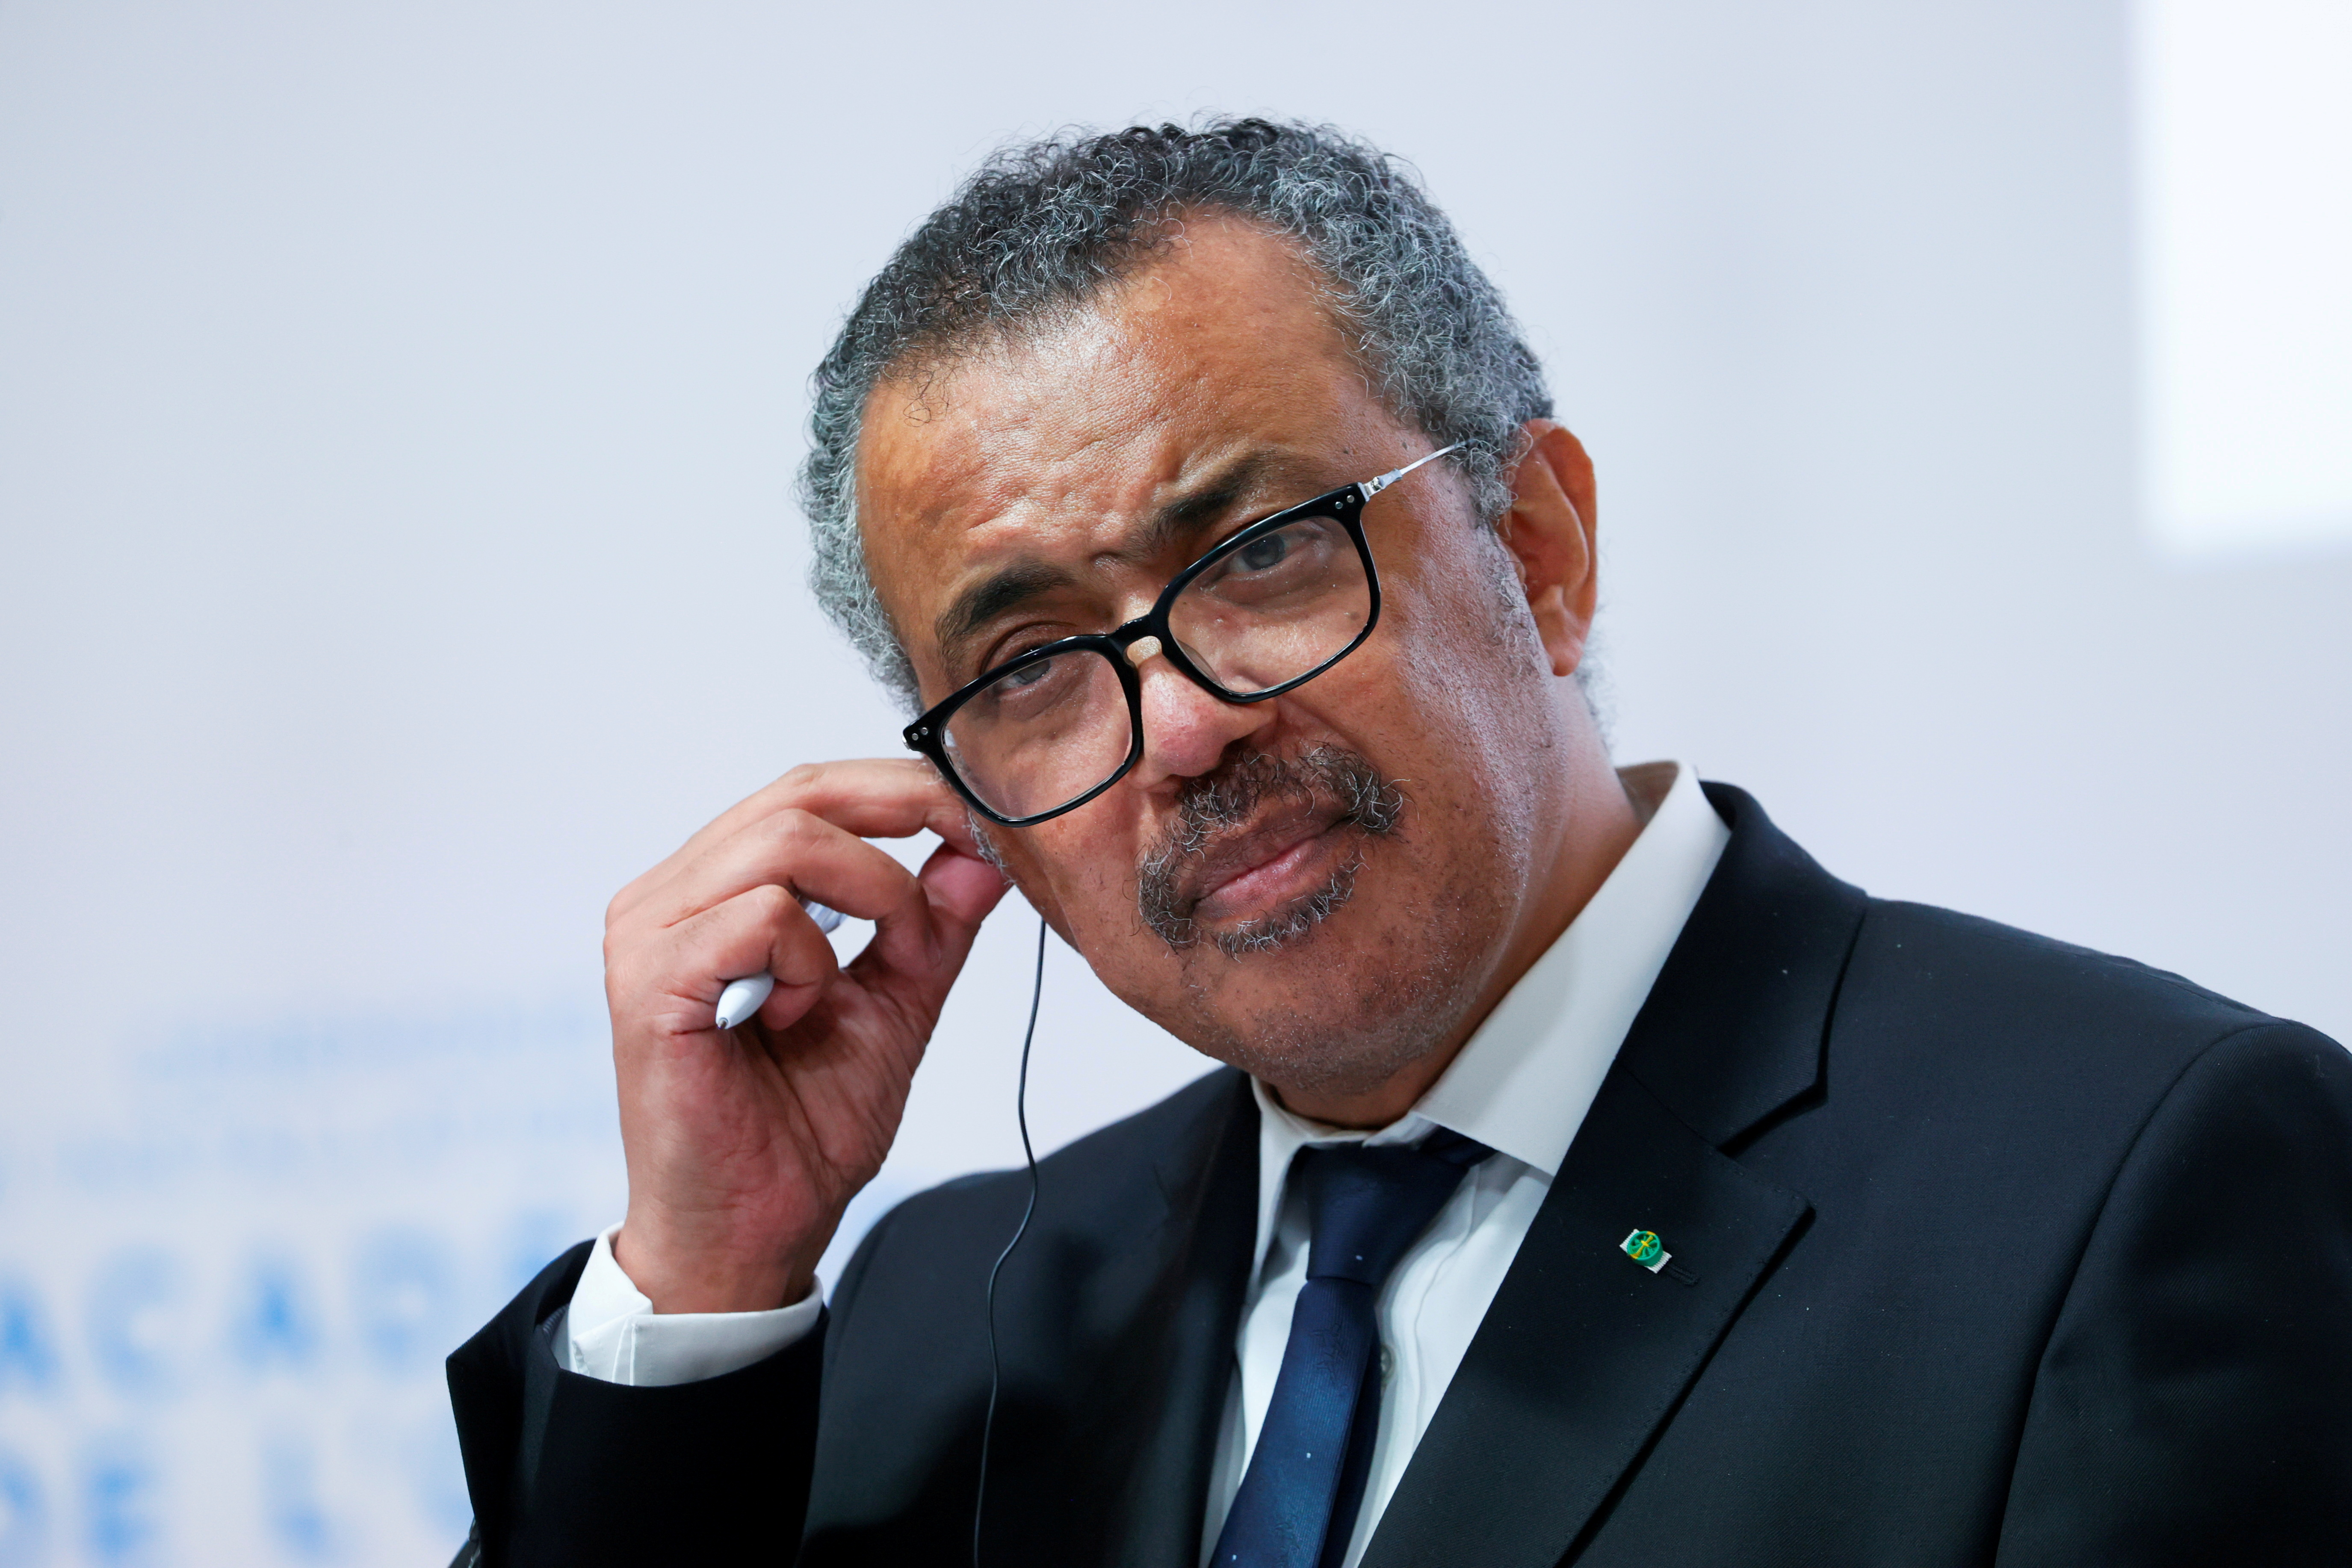 WHO Director-General Tedros Adhanom Ghebreyesus attends a news conference after a ceremony for the opening of the WHO Academy, in Lyon, France, September 27, 2021. REUTERS/Denis Balibouse